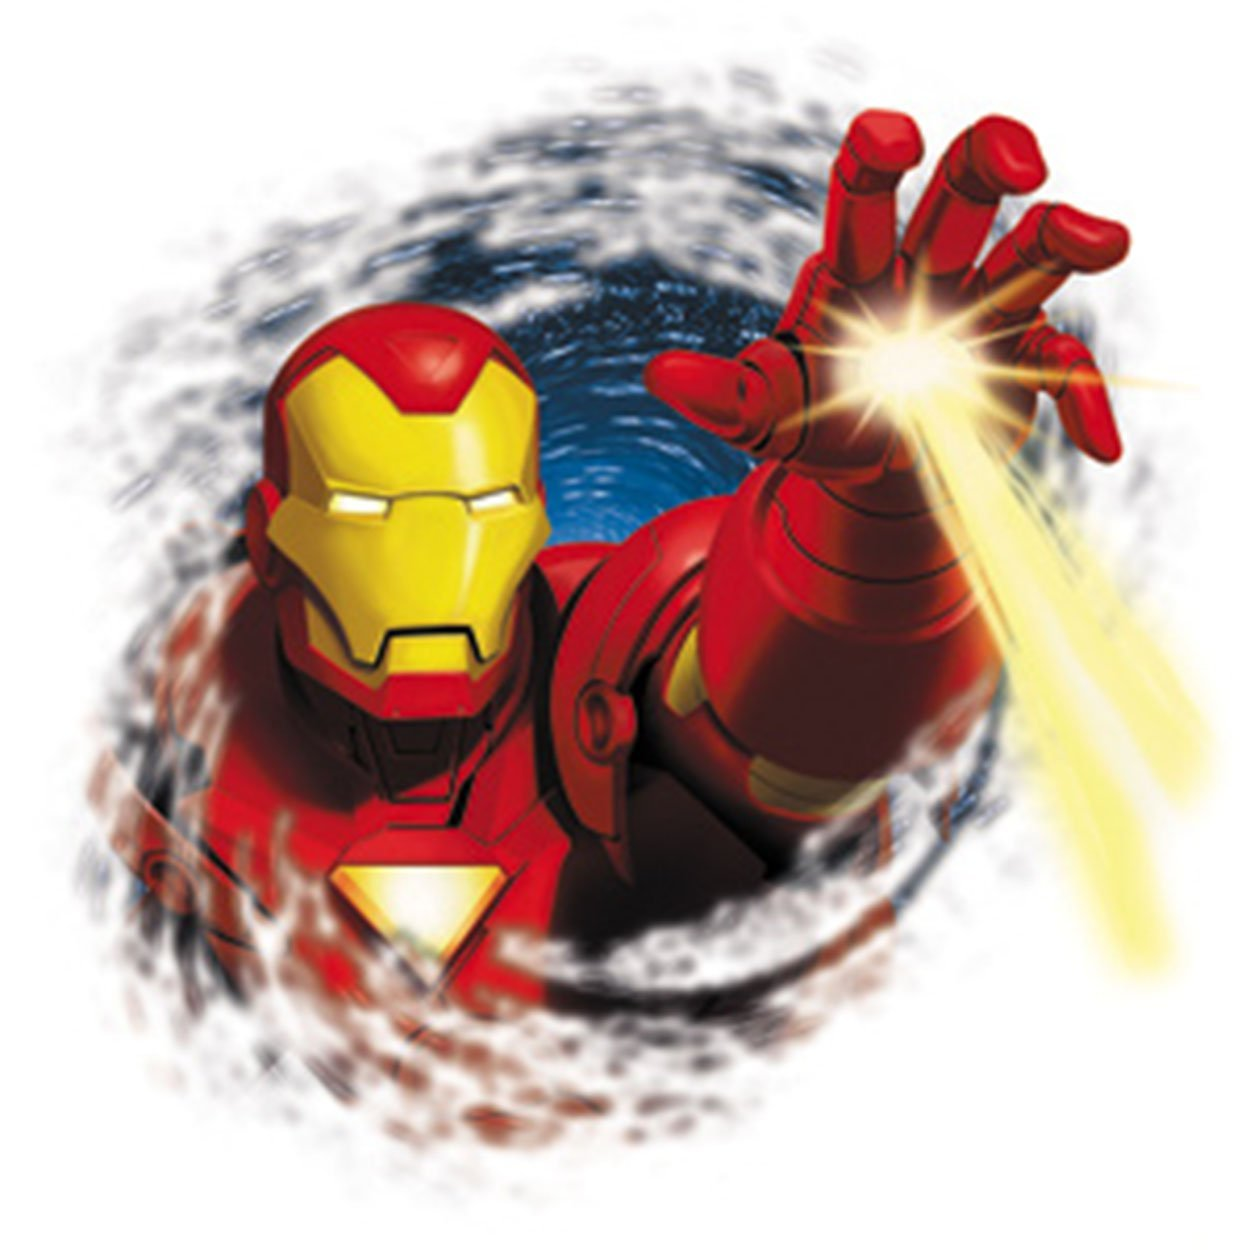 Officially Licensed, Invincible Iron Man Hand Sticker